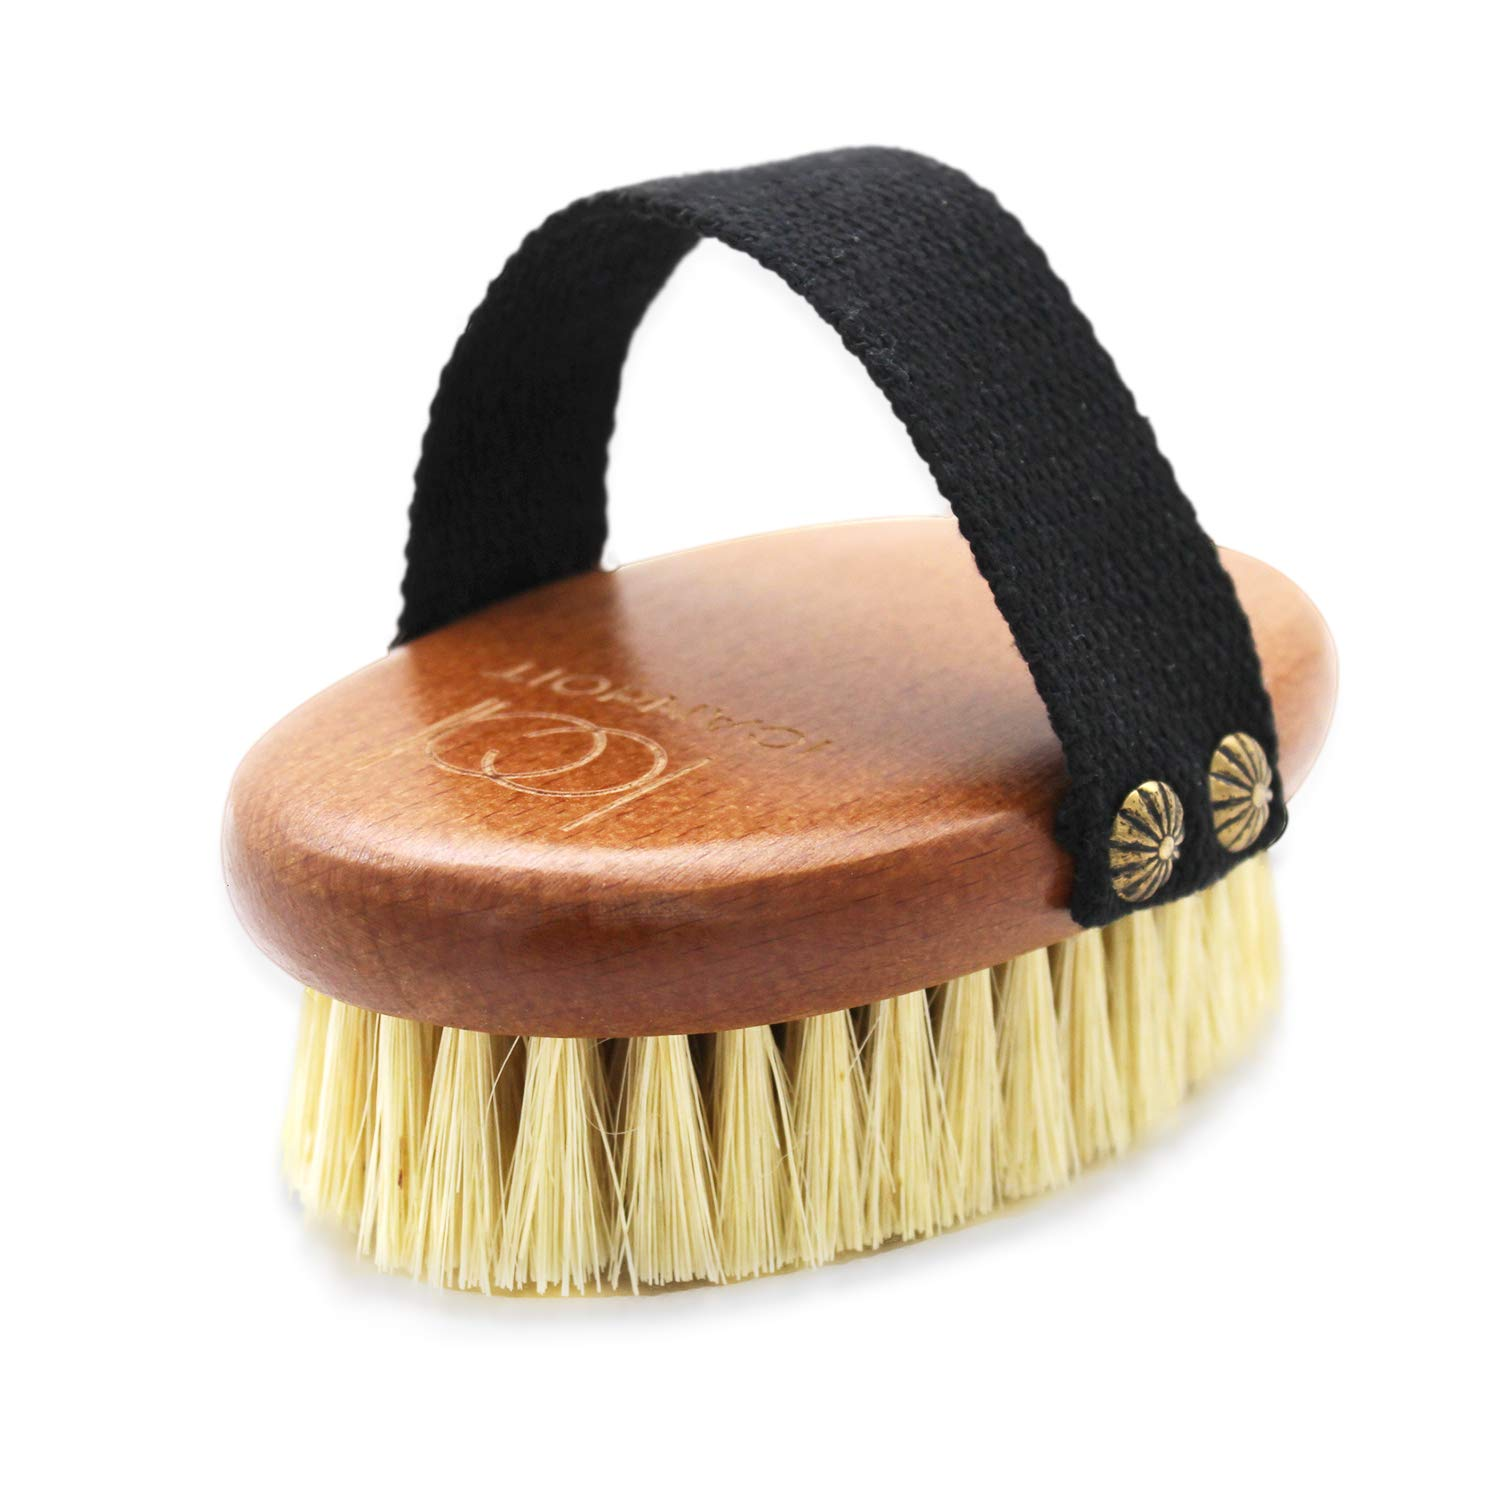 ICANdOIT Dry Brushing Body Brush brist 100% natural agave 70% OFF Excellent Outlet cactus